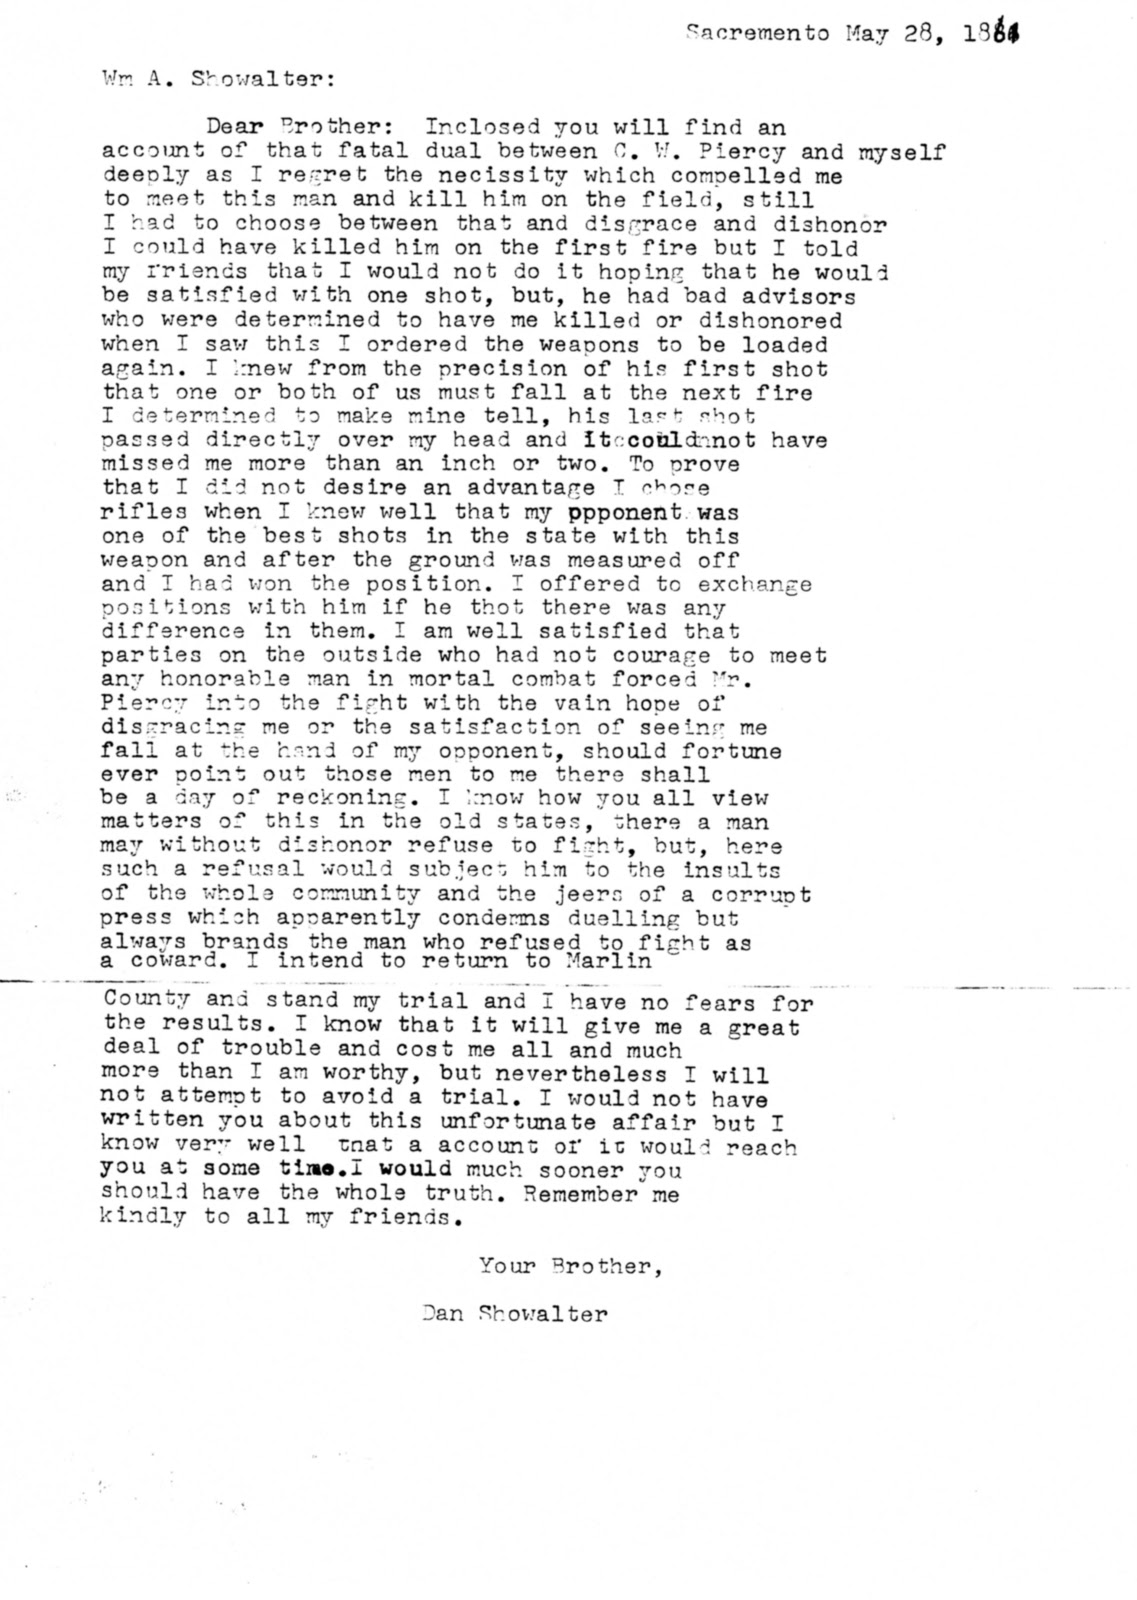 transcription of a previously unpublished letter of dan showalter to his brother william explaining his actions in the showalter piercy duel together with